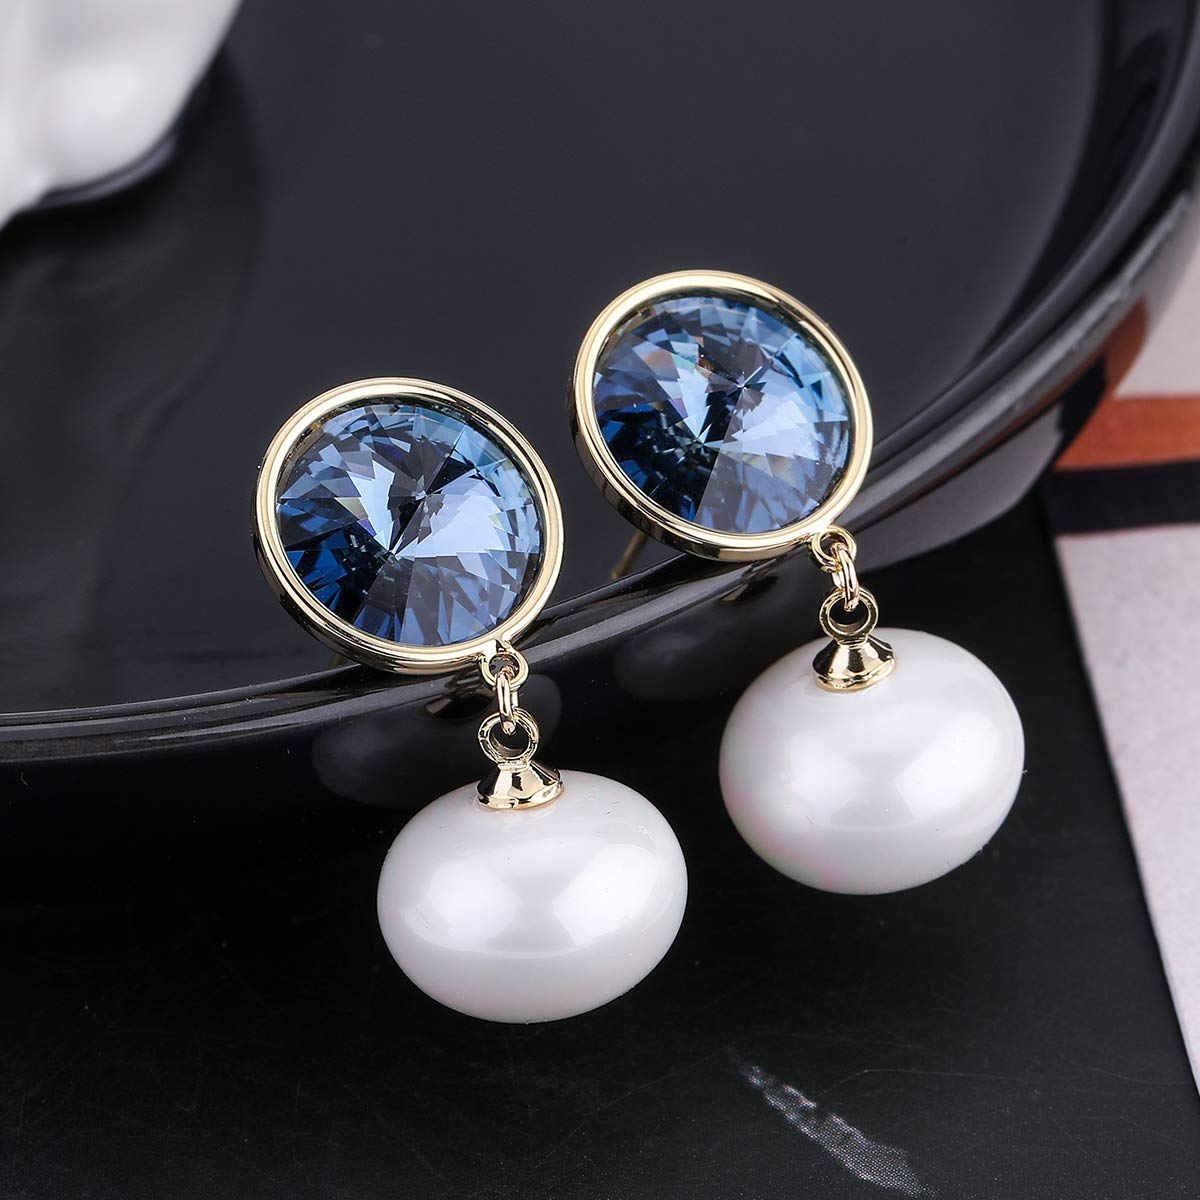 Austrian crystal stud earrings perfect for all ages Oval shaped and solid silver stud earrings,light weight and very comfortable to wear